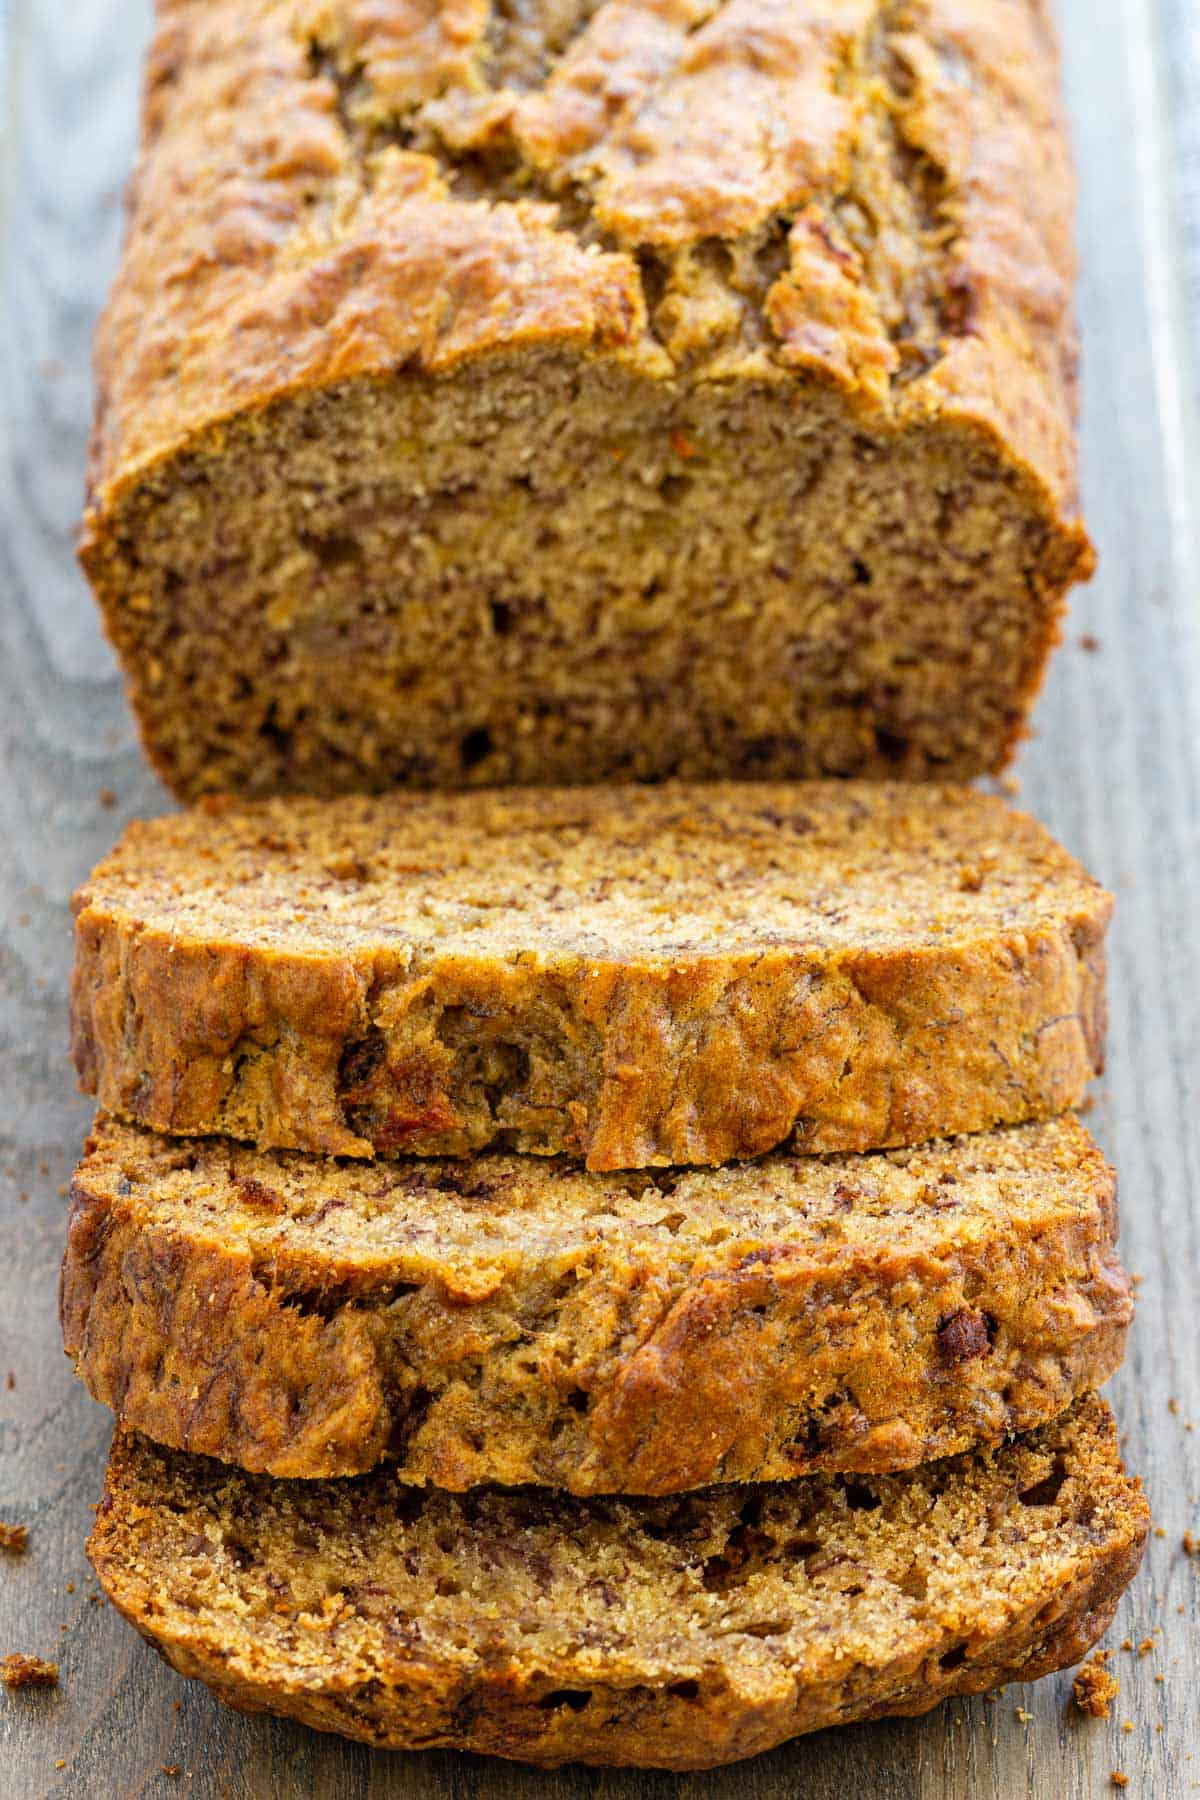 This banana bread takes the classic recipe to the next level by cooking ripe bananas, extracting the juice, and reducing it for caramelized flavor. #bananabread #bread #loaf #banana